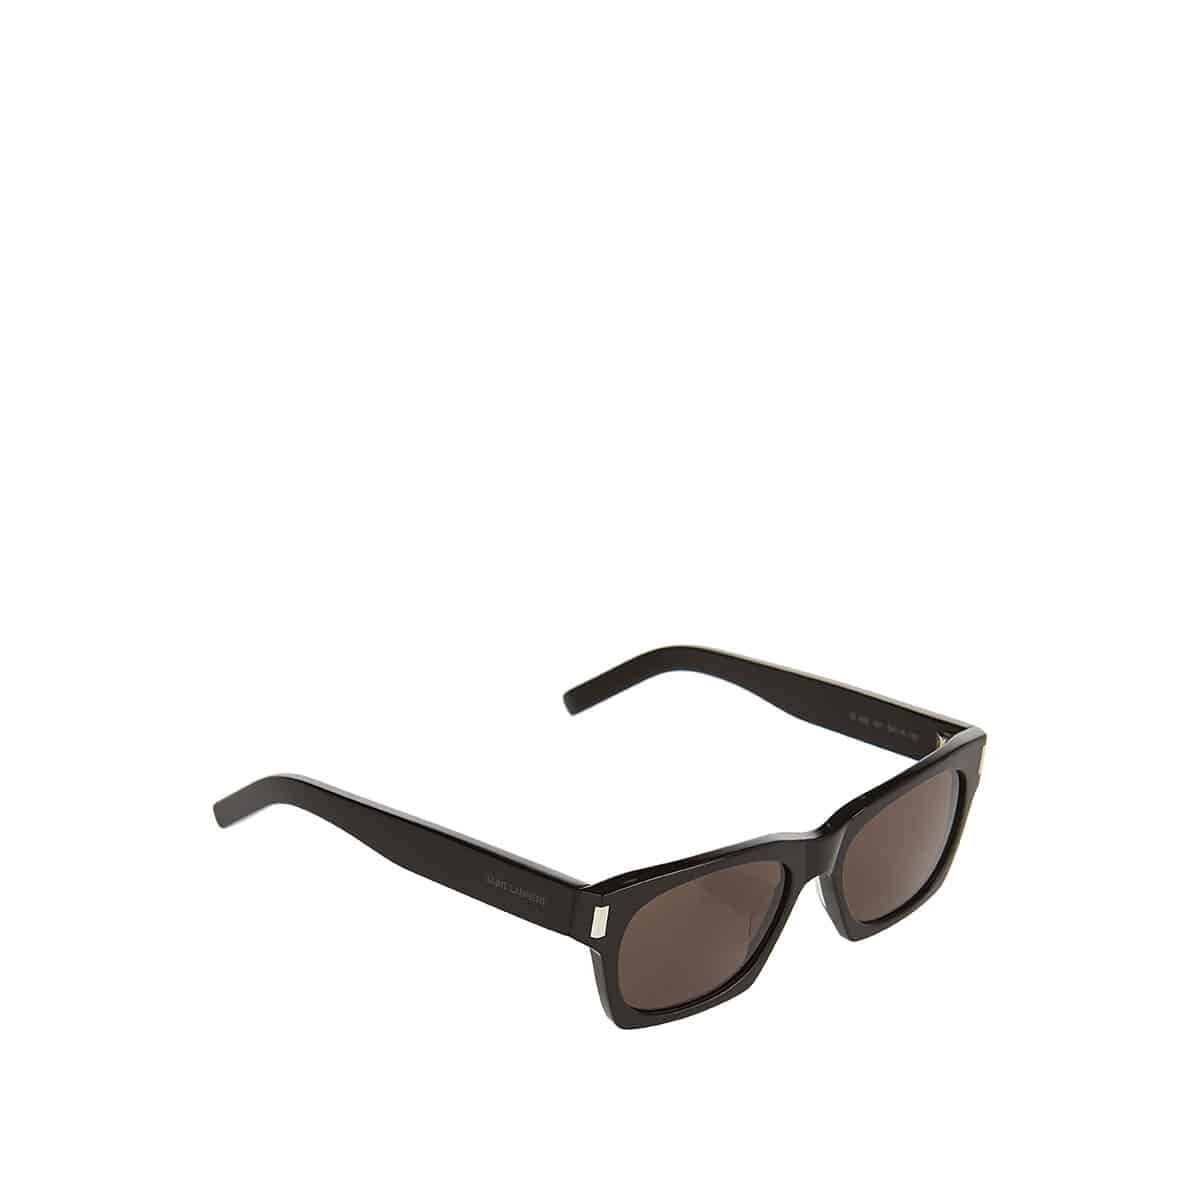 SL 402 square acetate sunglassesSL 402 square acetate sunglasses